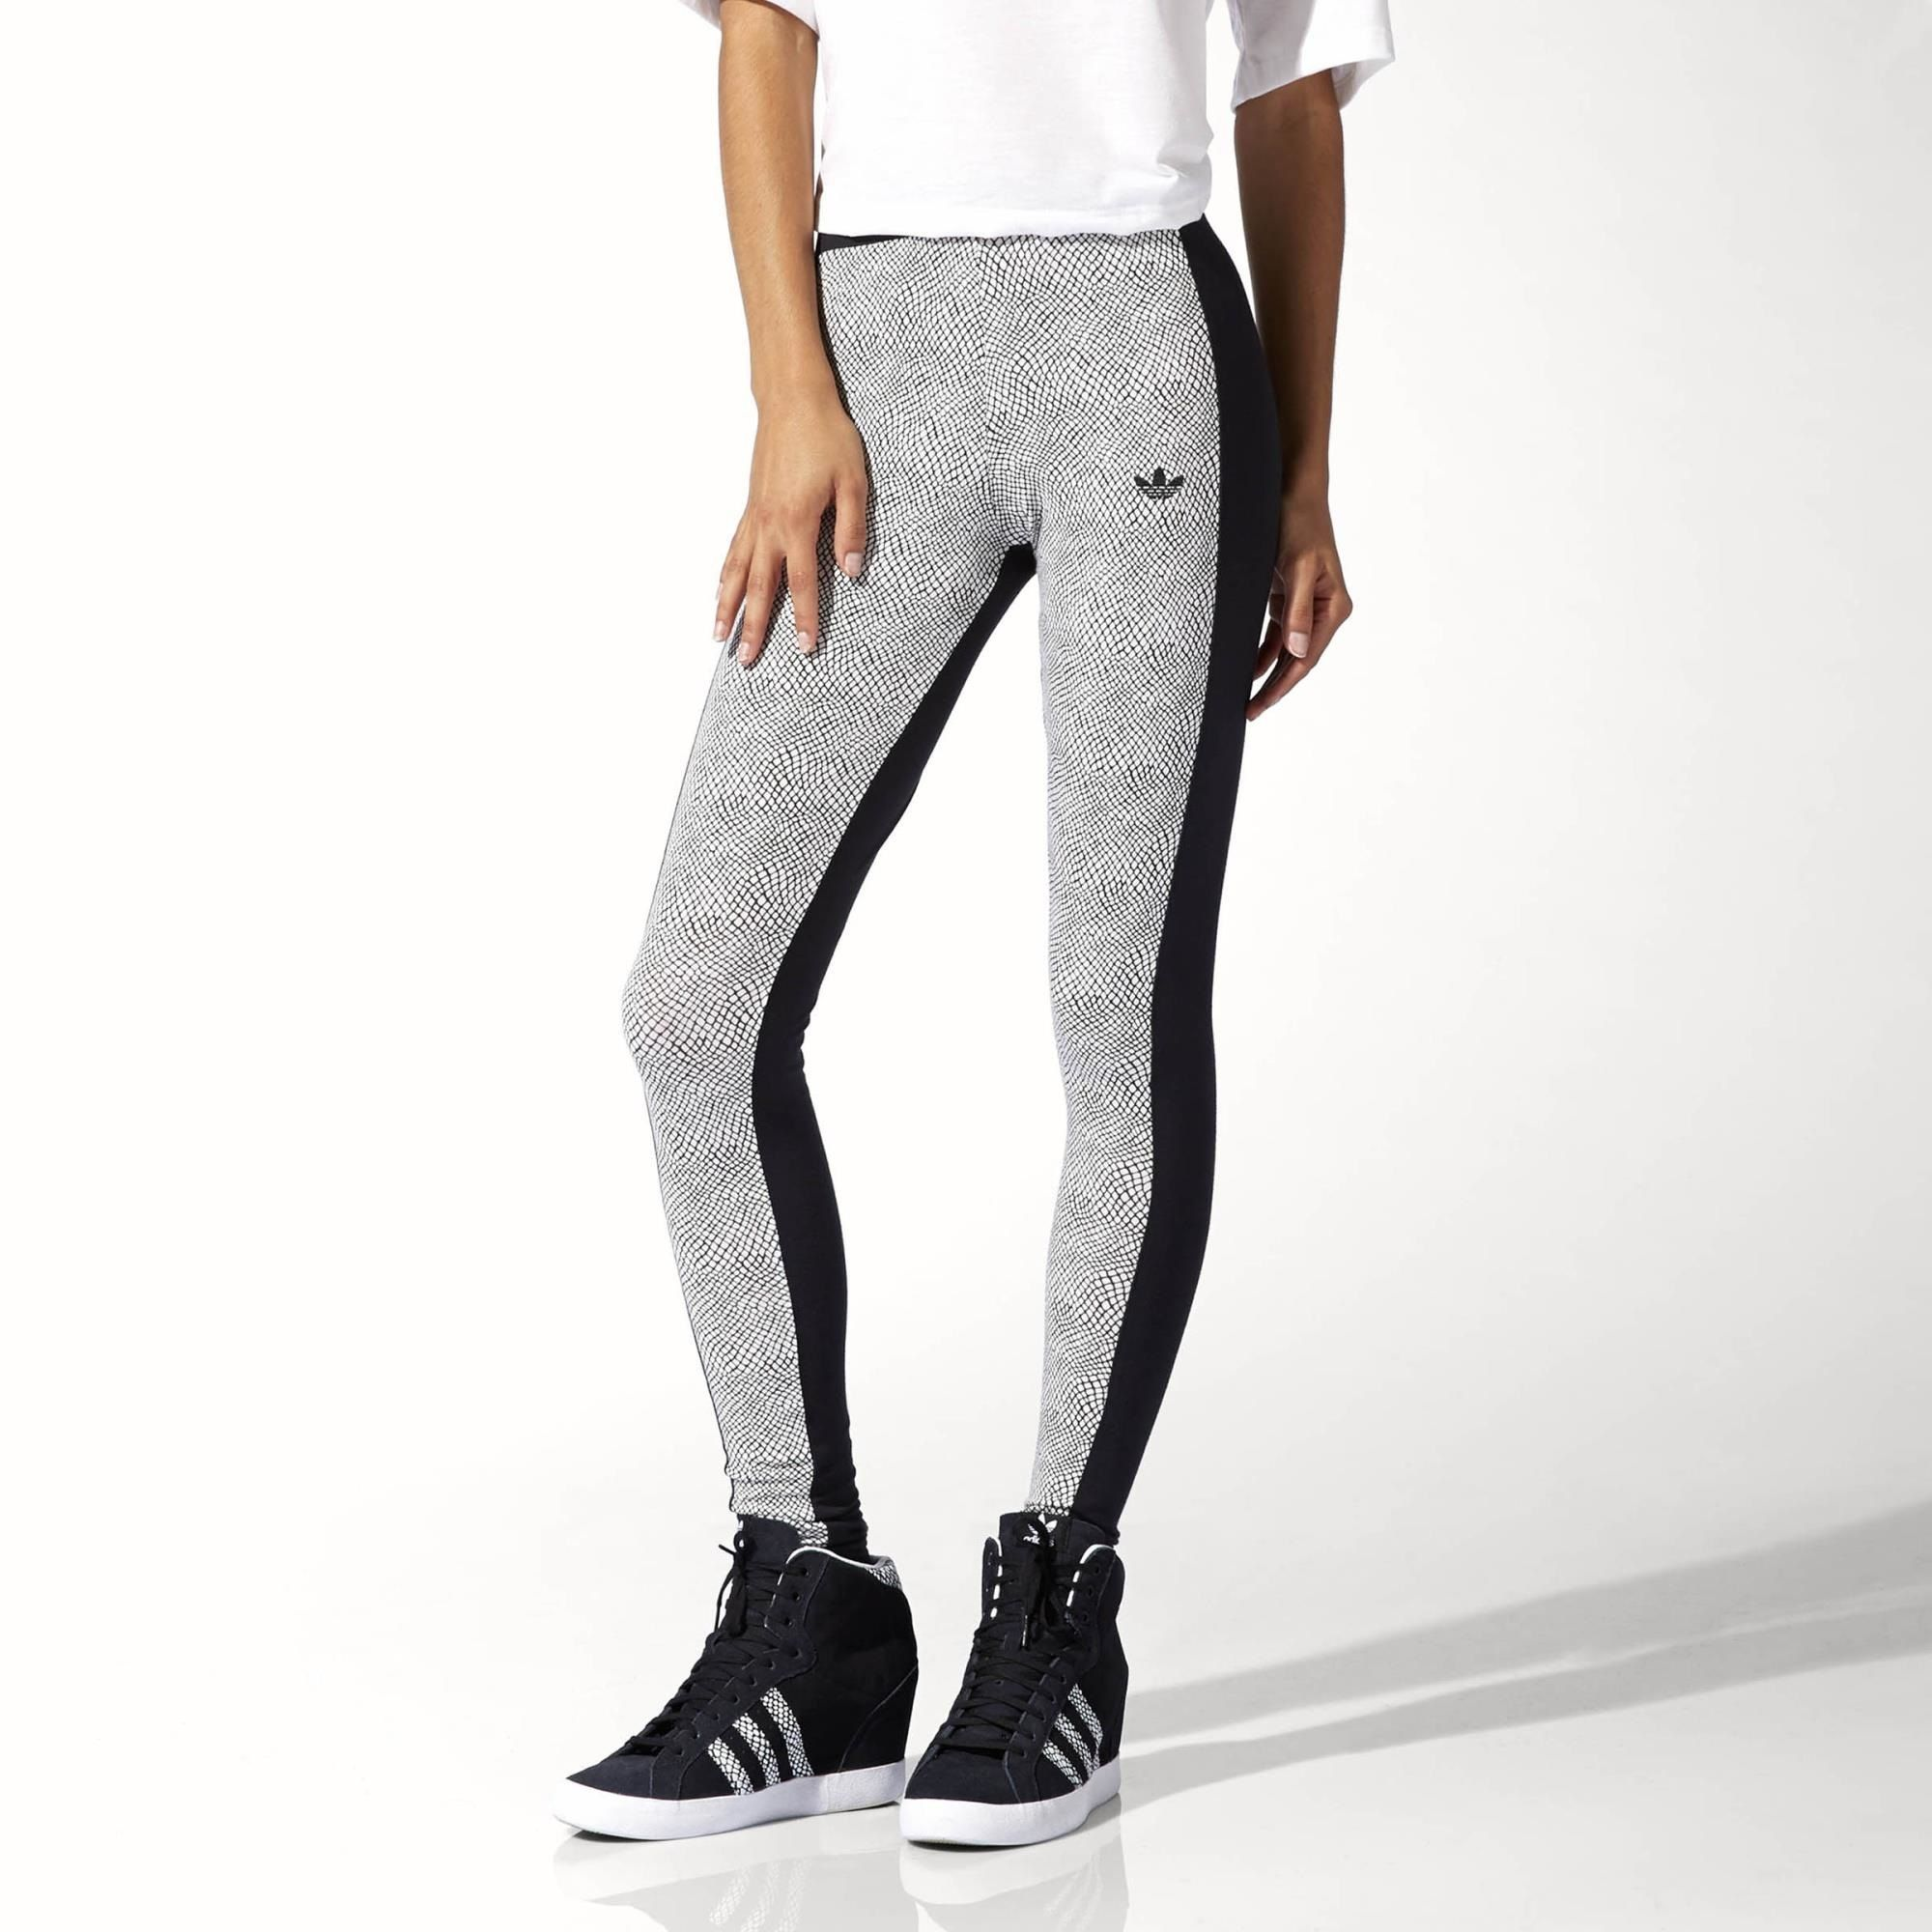 77301d64f743ec Slither into these women's leggings. They mix a tight, second-skin fit with  a scaly reptile print front and a solid back. The tights feature a tiny  Trefoil ...